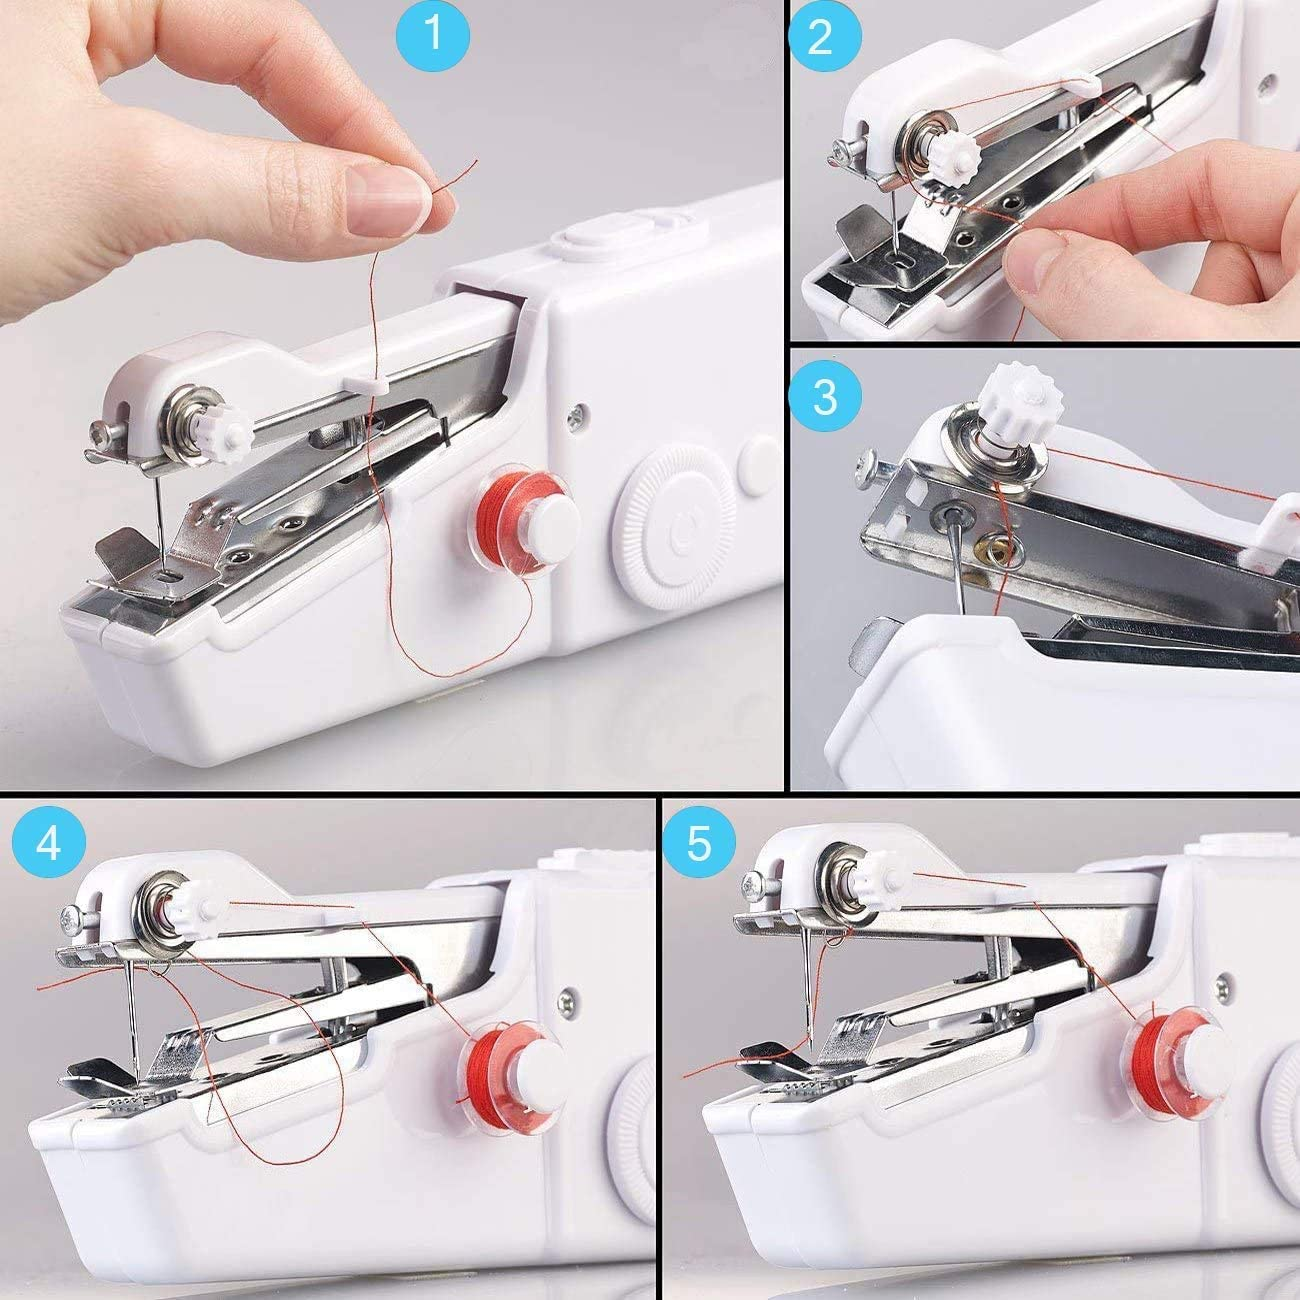 Mini Portable Electric Sewing Machine,Quick Stitch for Home,Travel or Working Yueetc Handheld Sewing Machine Best Valentines Gifts for Girls